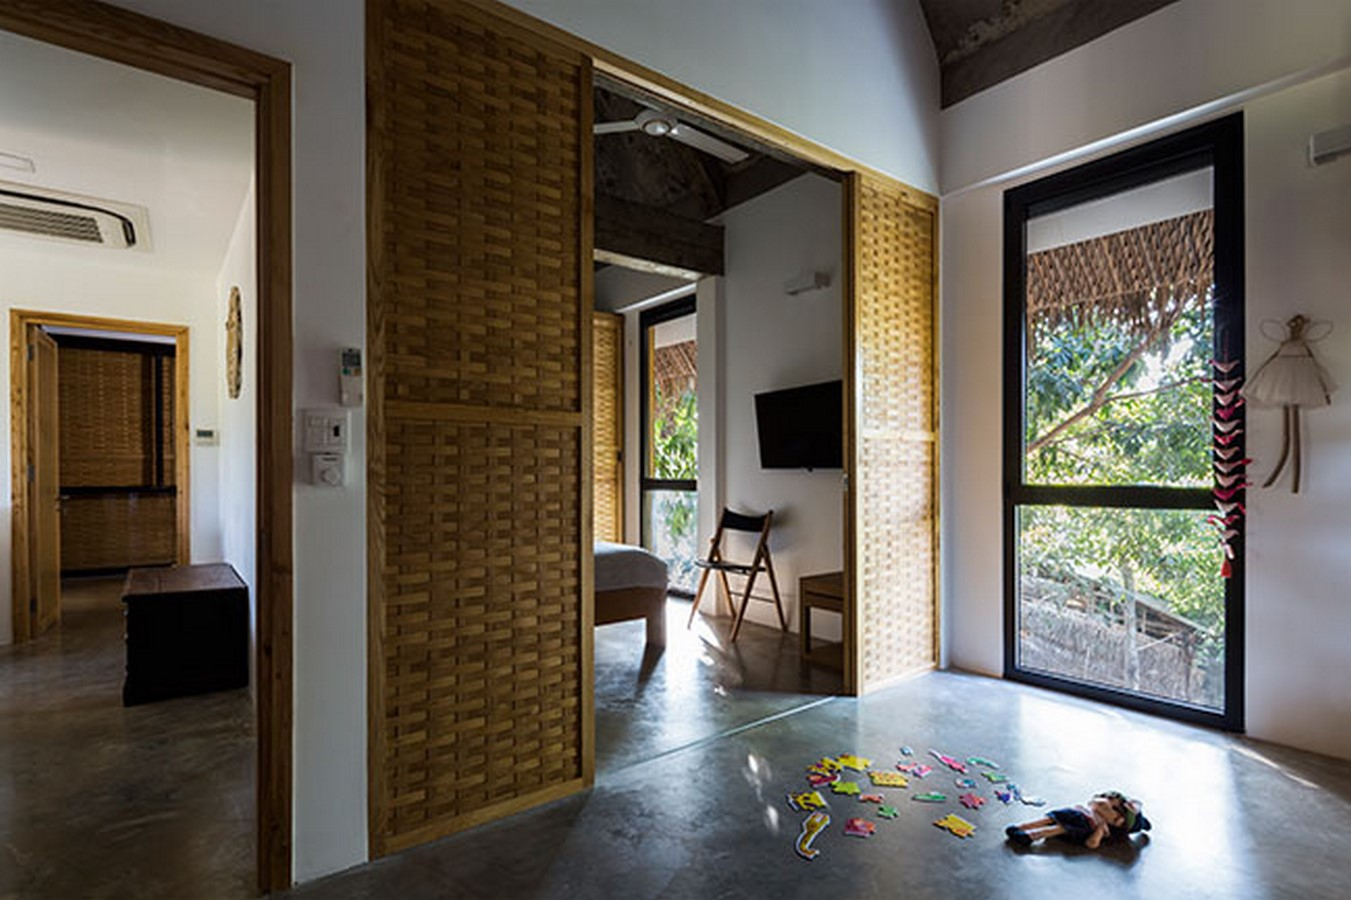 Tropical Holiday House with Woven Sliding Panels - Sheet3